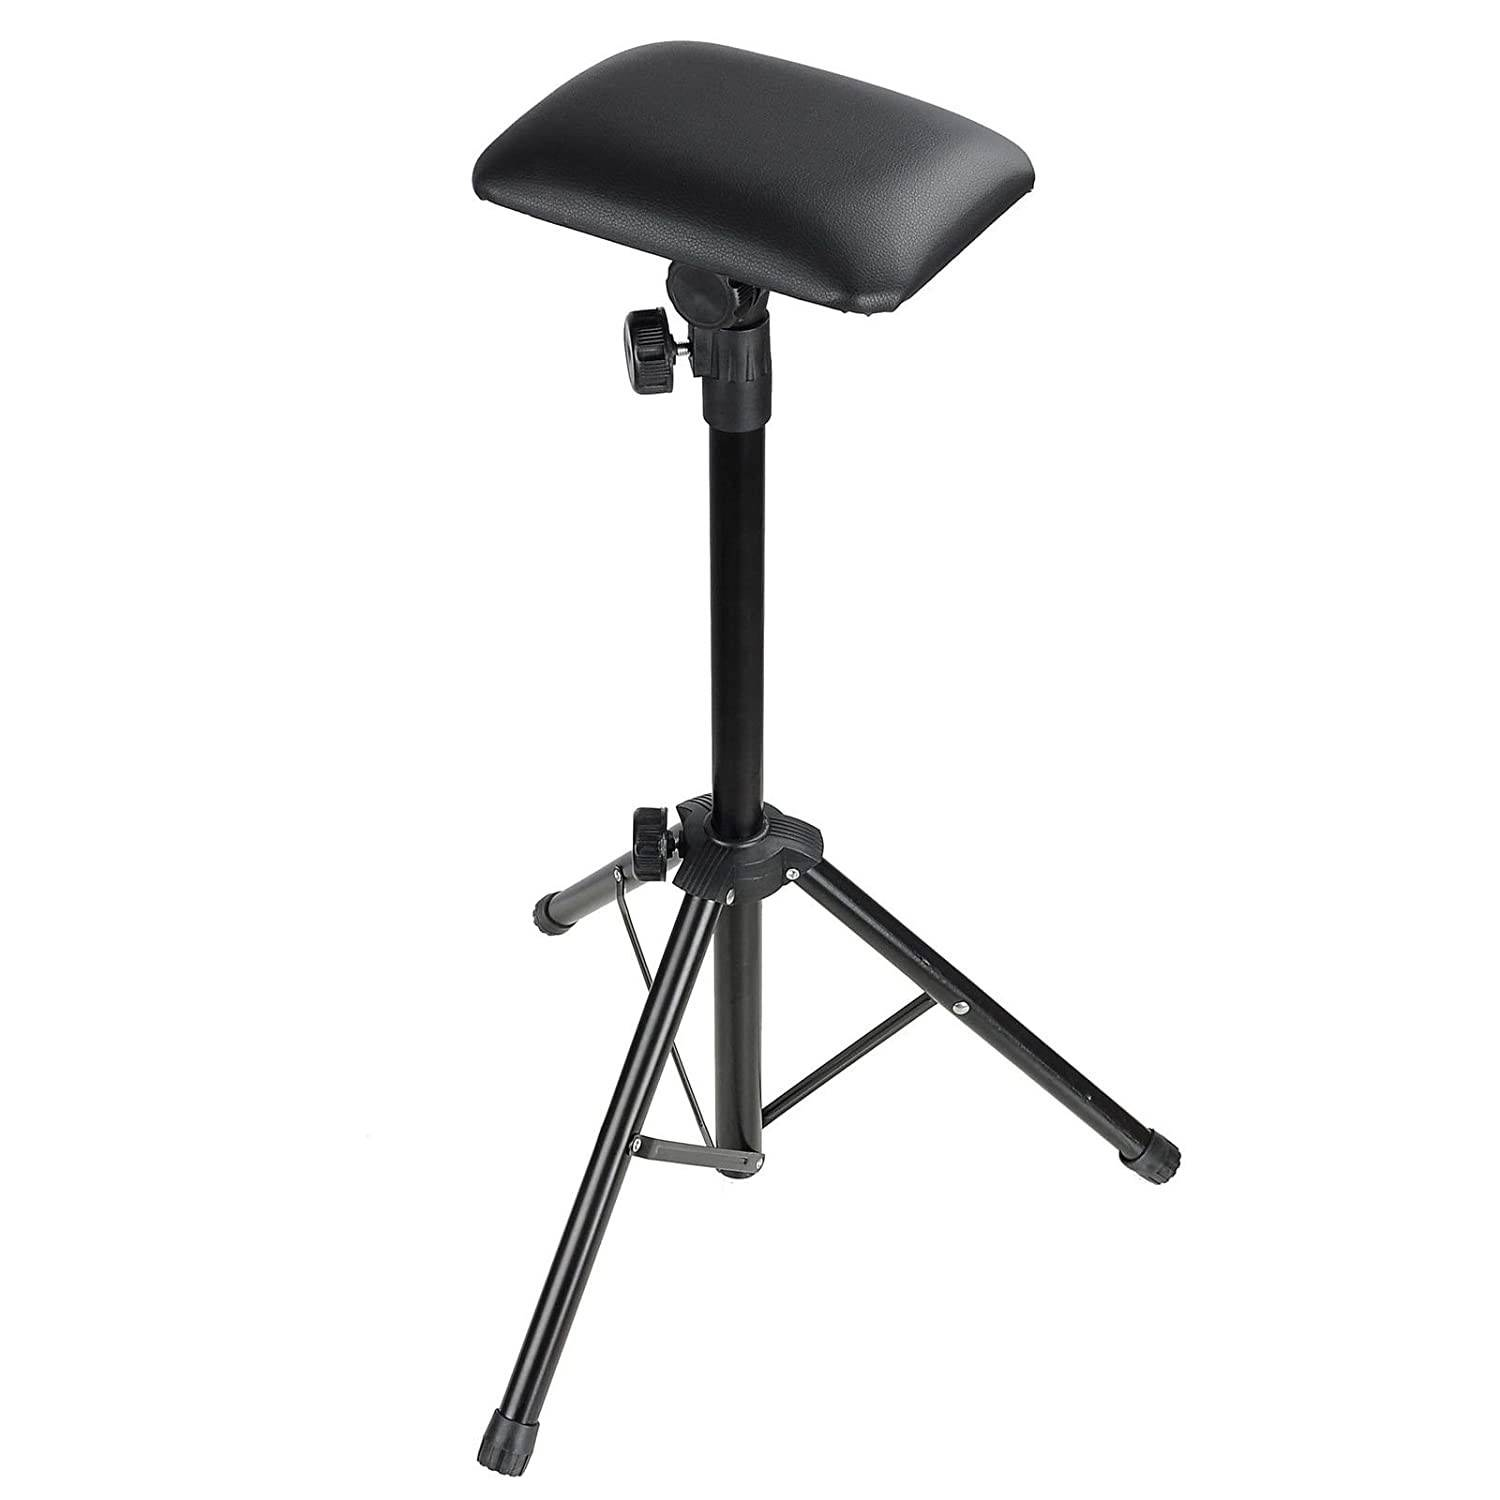 Tattoo Adjustable Height Black Arm Rest Stand